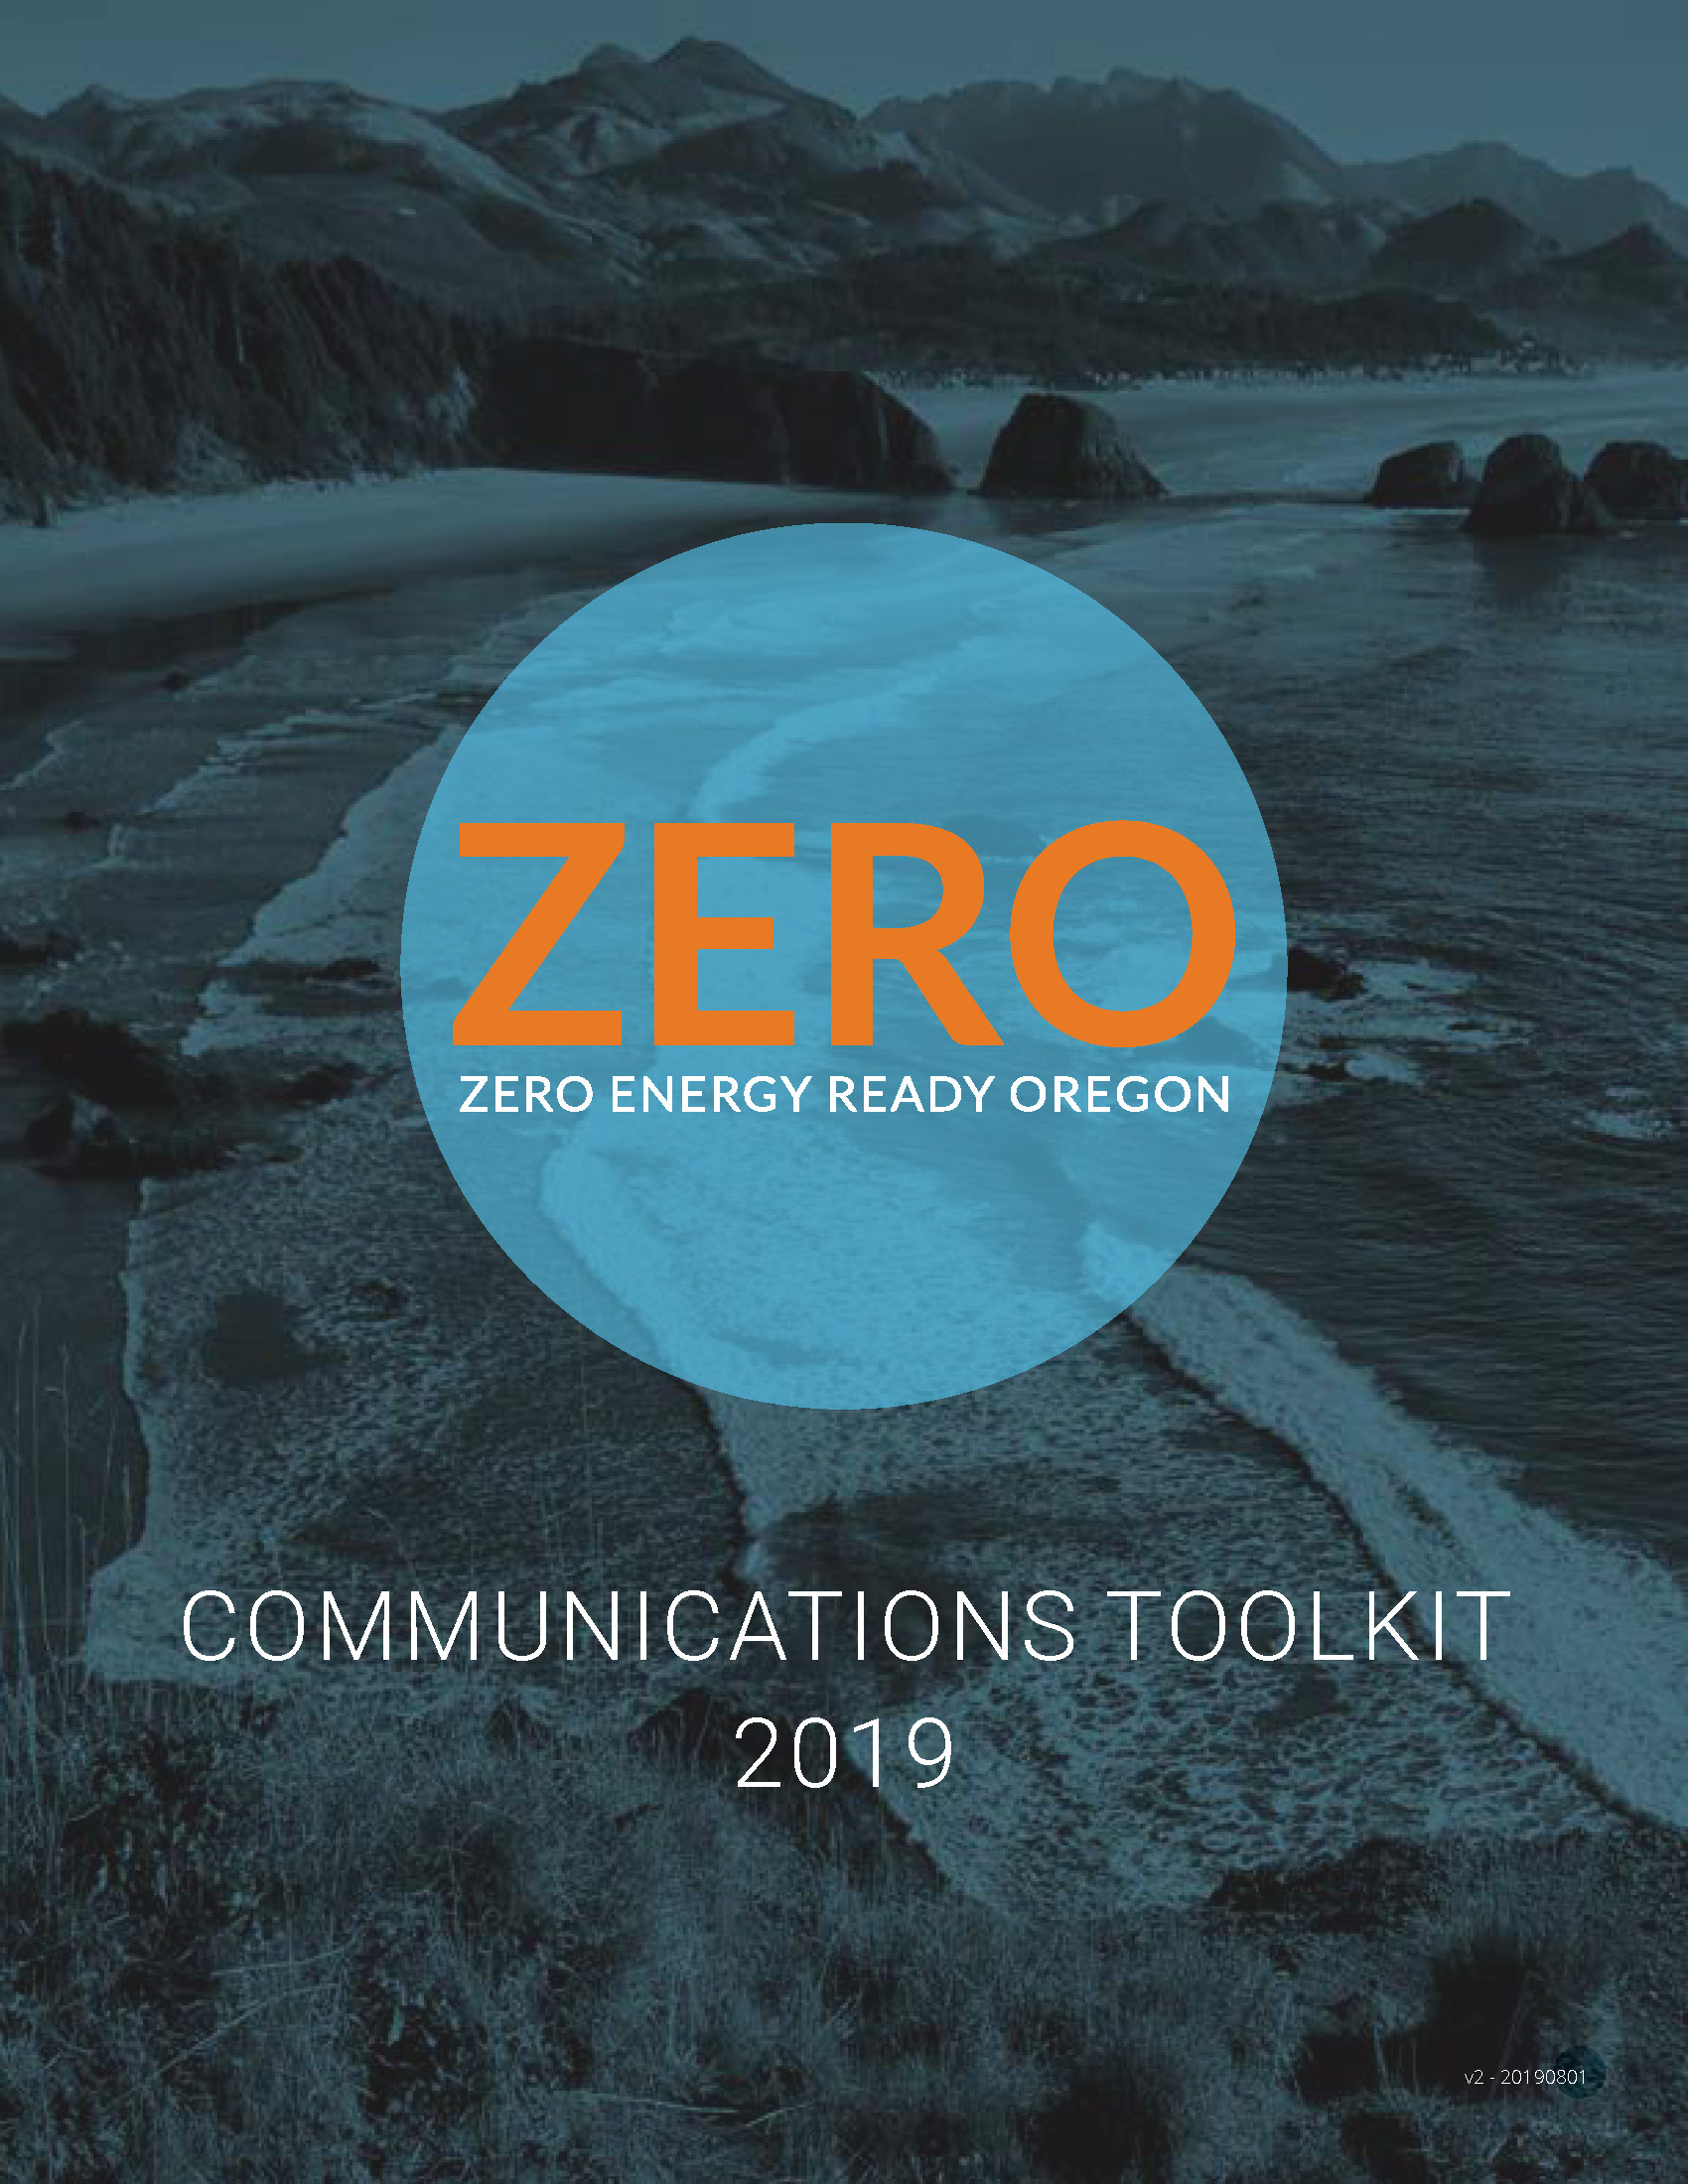 ZERO's Communications Toolkit is live! - This toolkit is a resource for Oregonians working to increase adoption of zero energy and zero energy ready buildings – policymakers, designers, builders, nonprofits, code writers, and climate justice advocates.